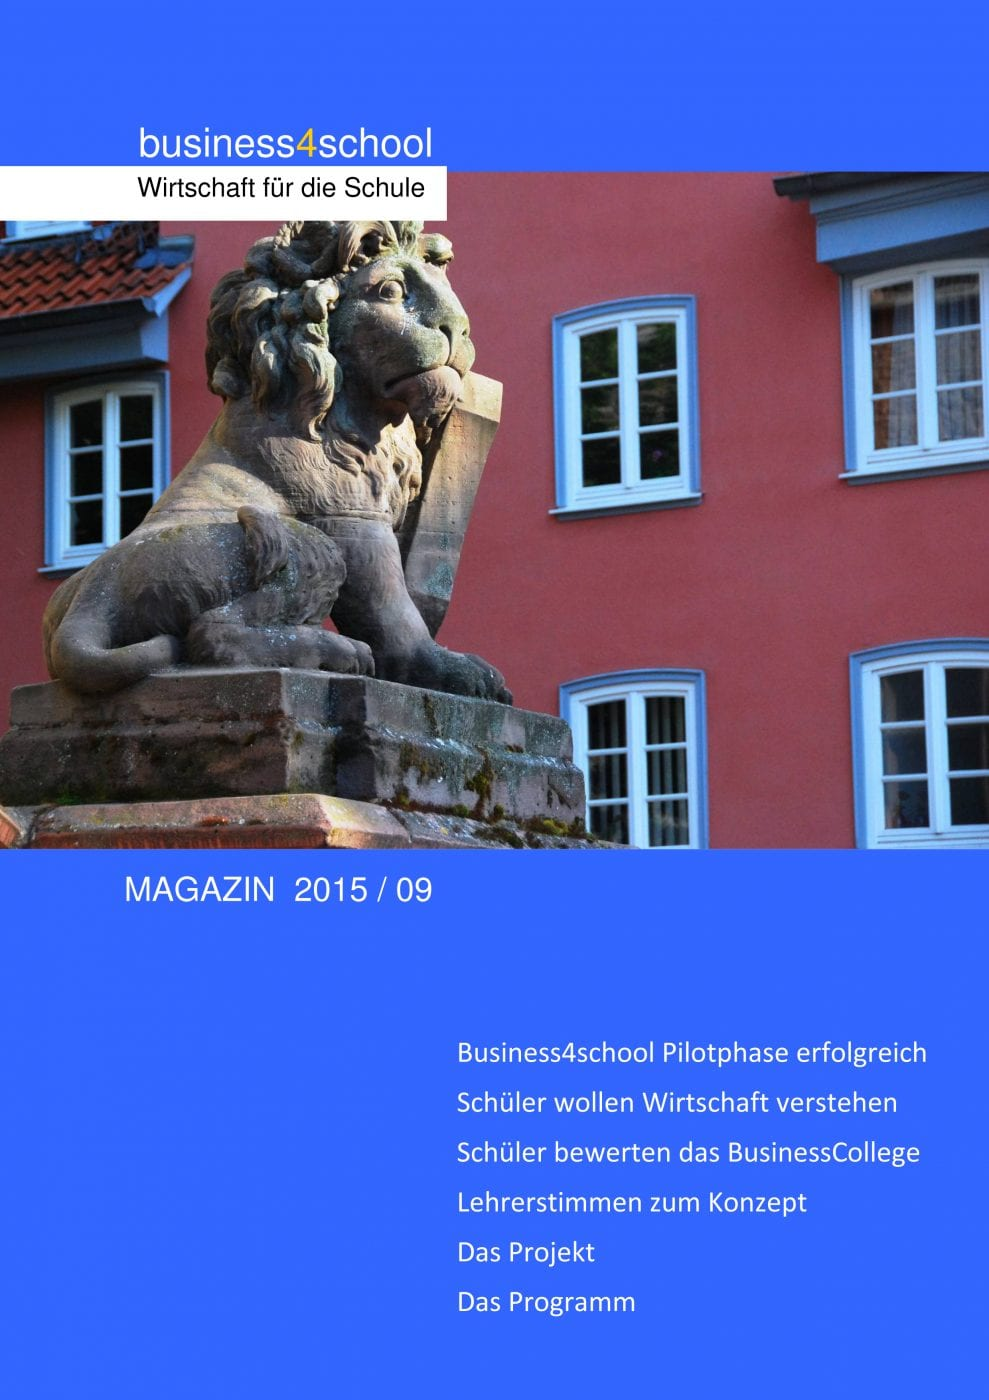 business4school magazin 2015-09